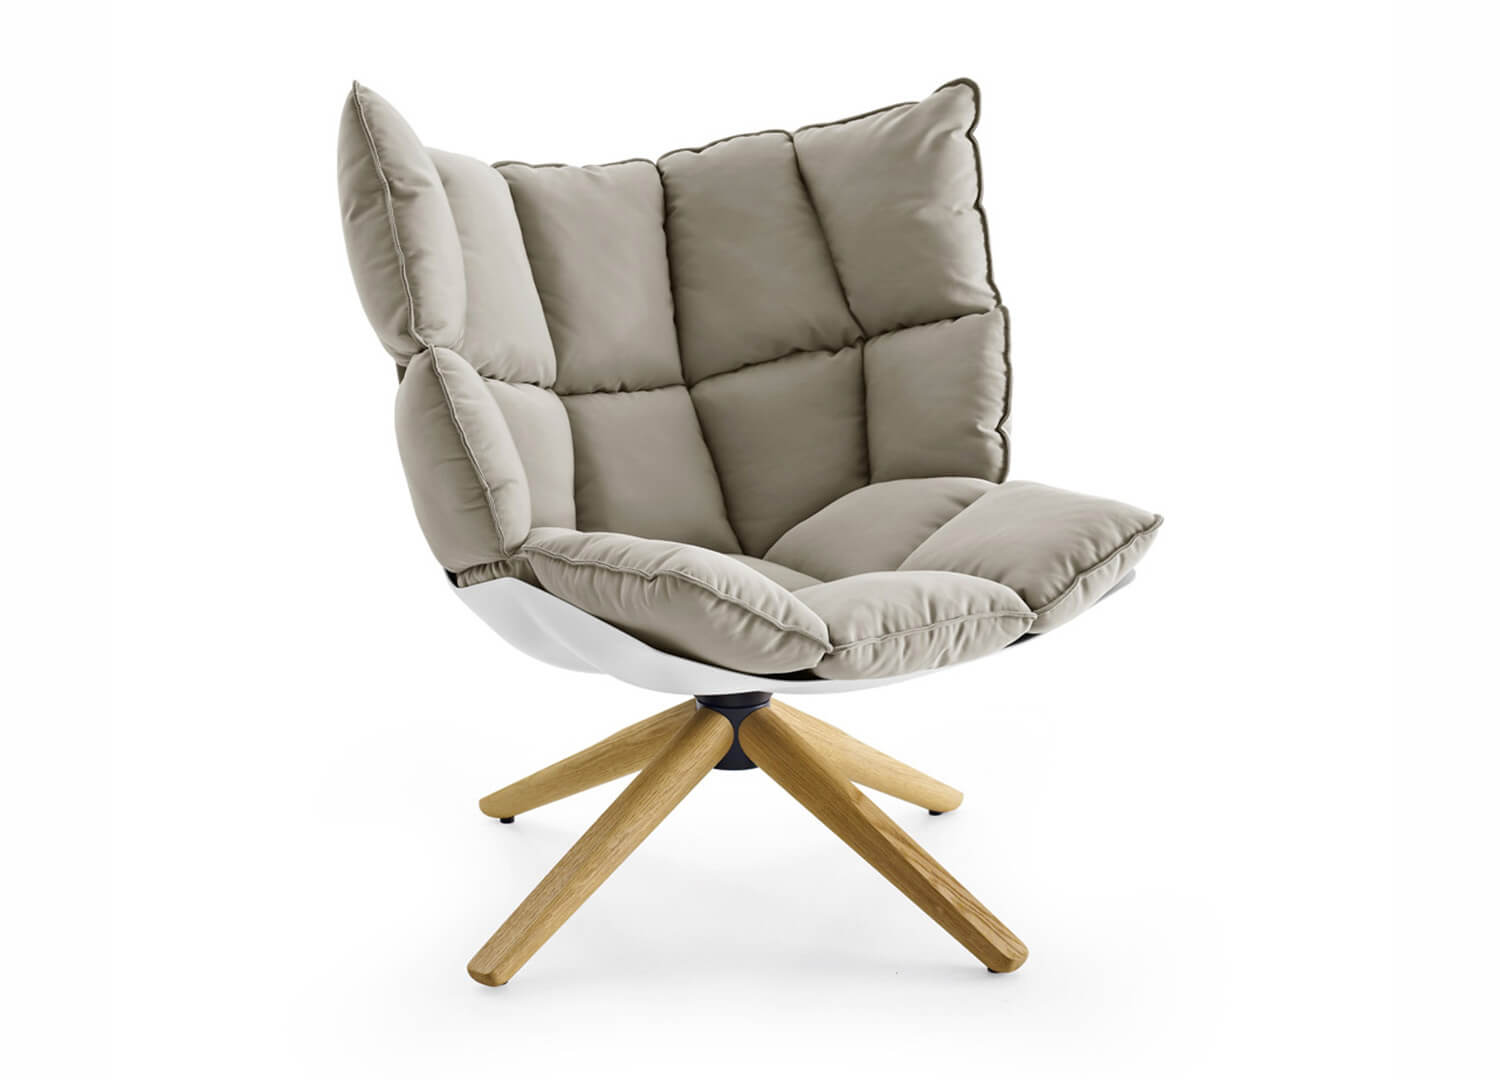 Husk Armchair Space Furniture